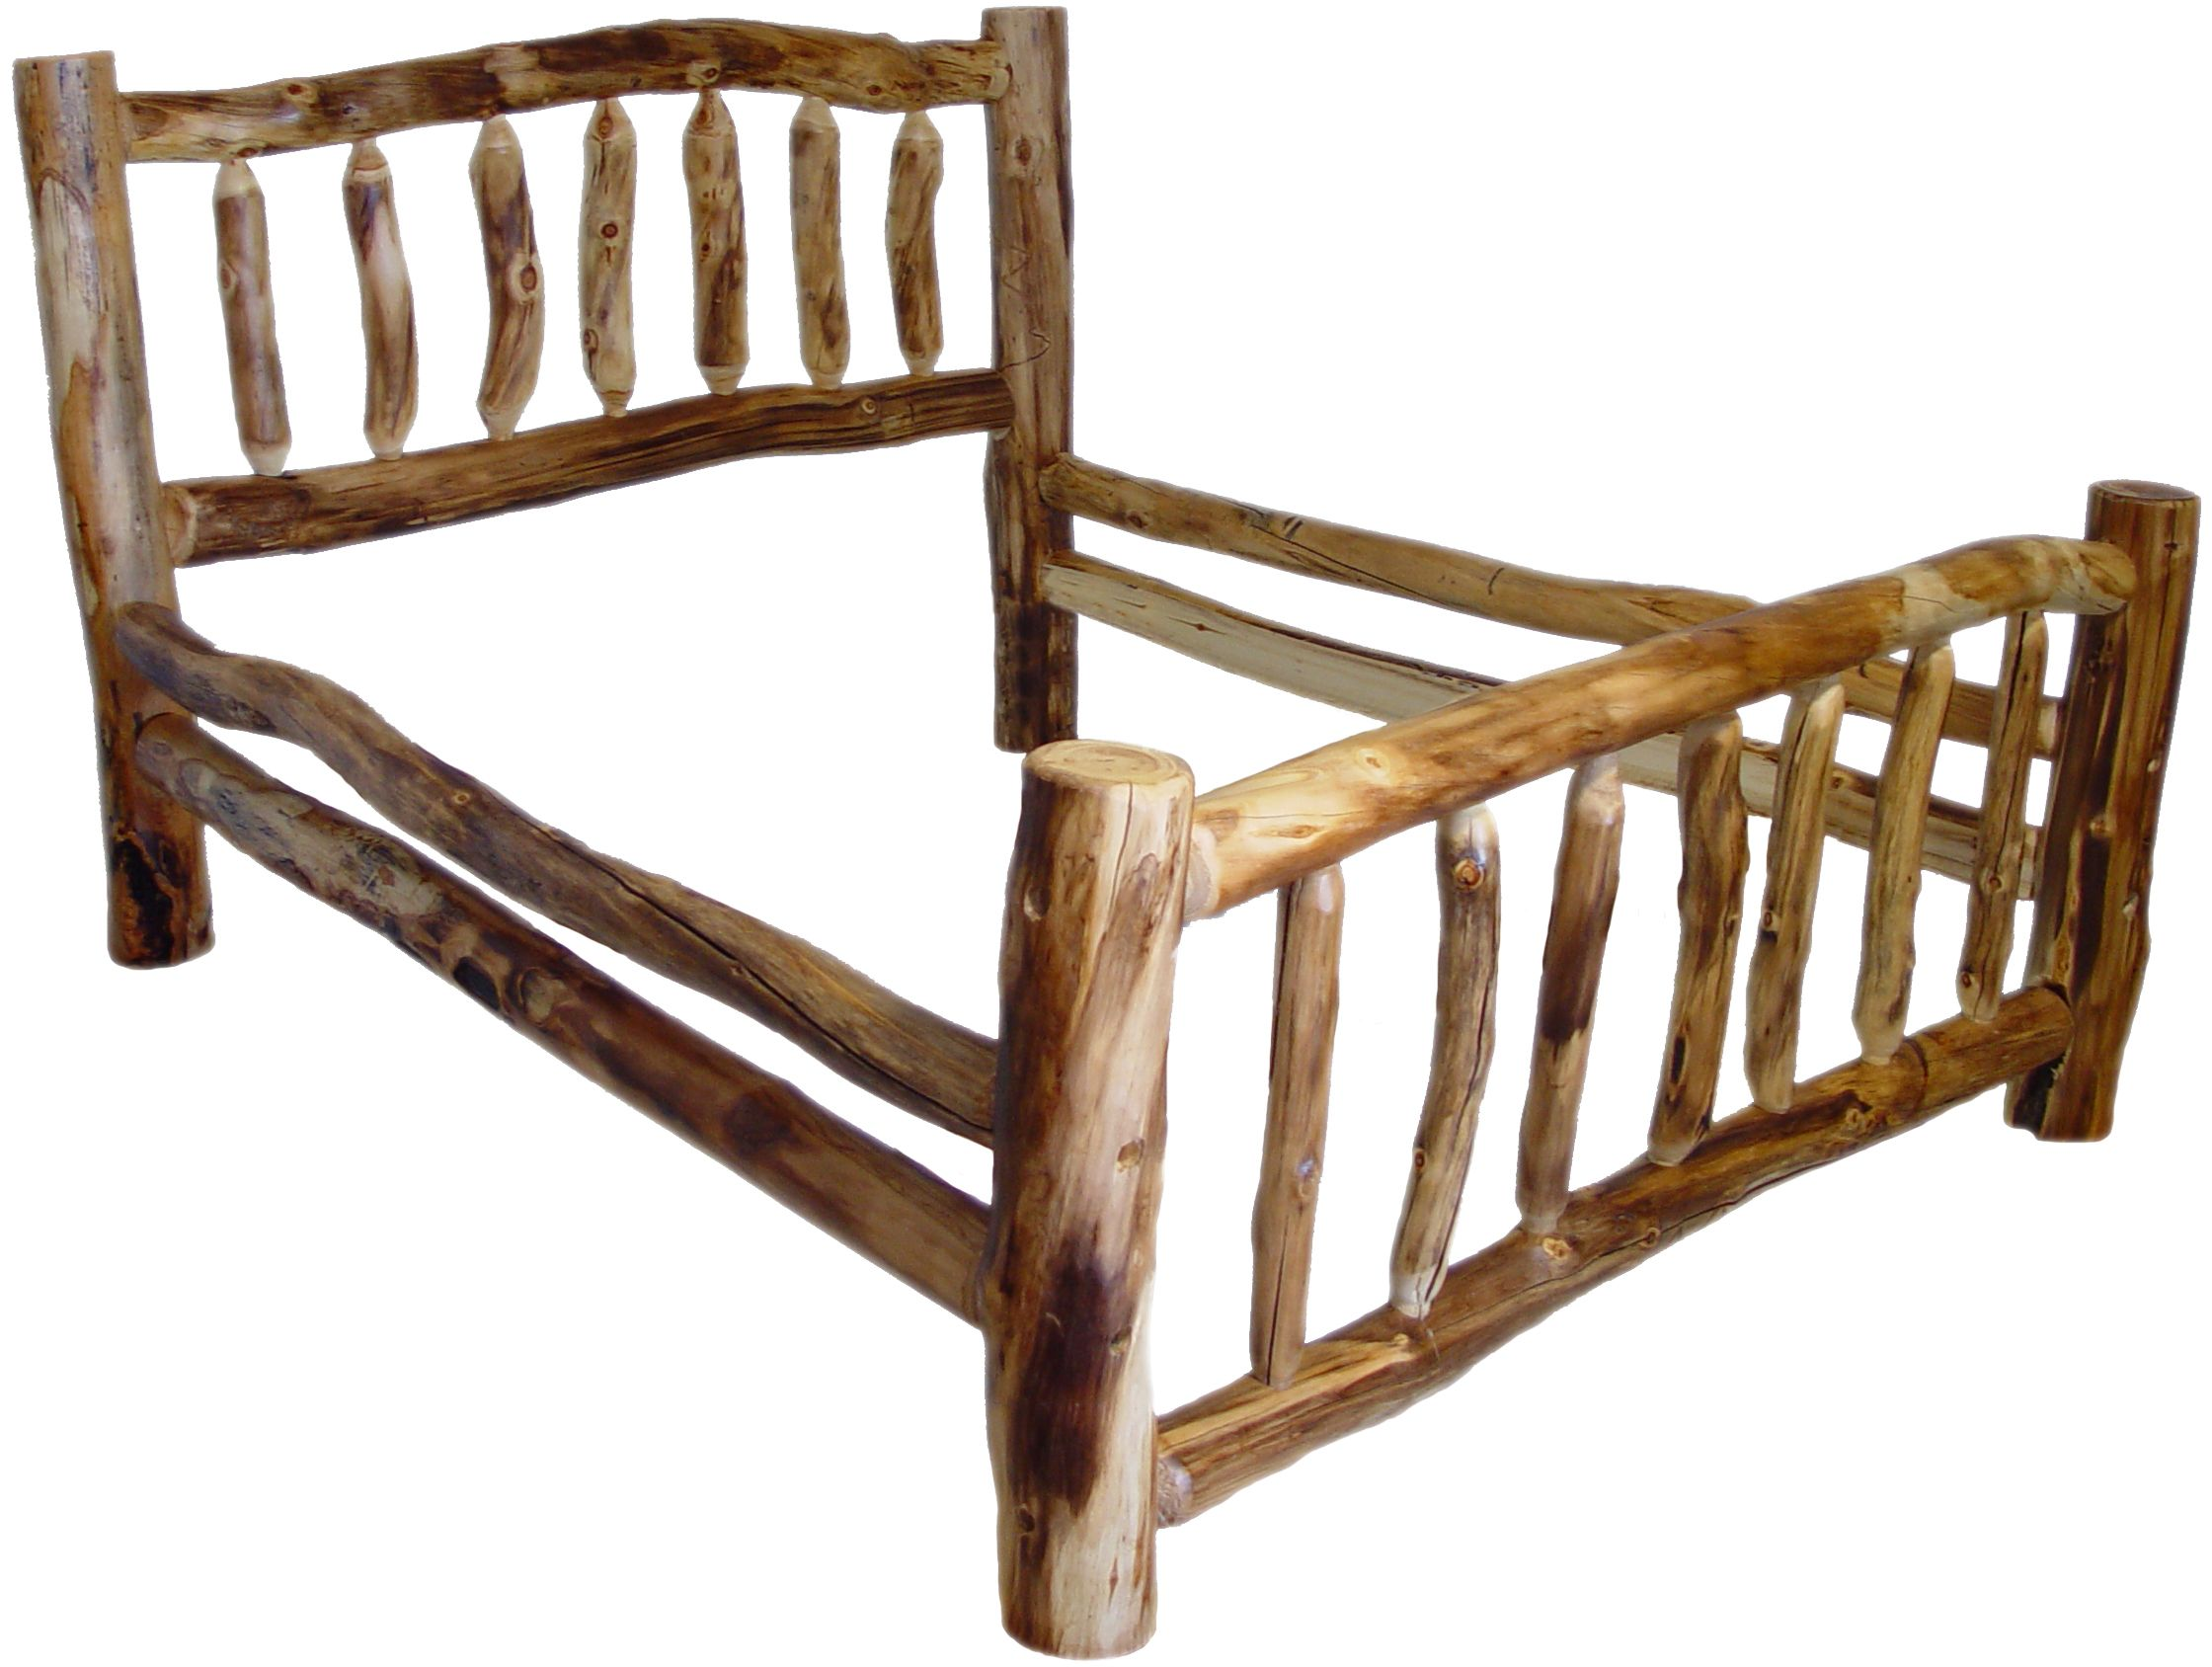 Aspen Bed Smooth Logs Rustic Furniture Mall By Timber Creek Log Cabin Furniture Rustic Furniture Log Bed